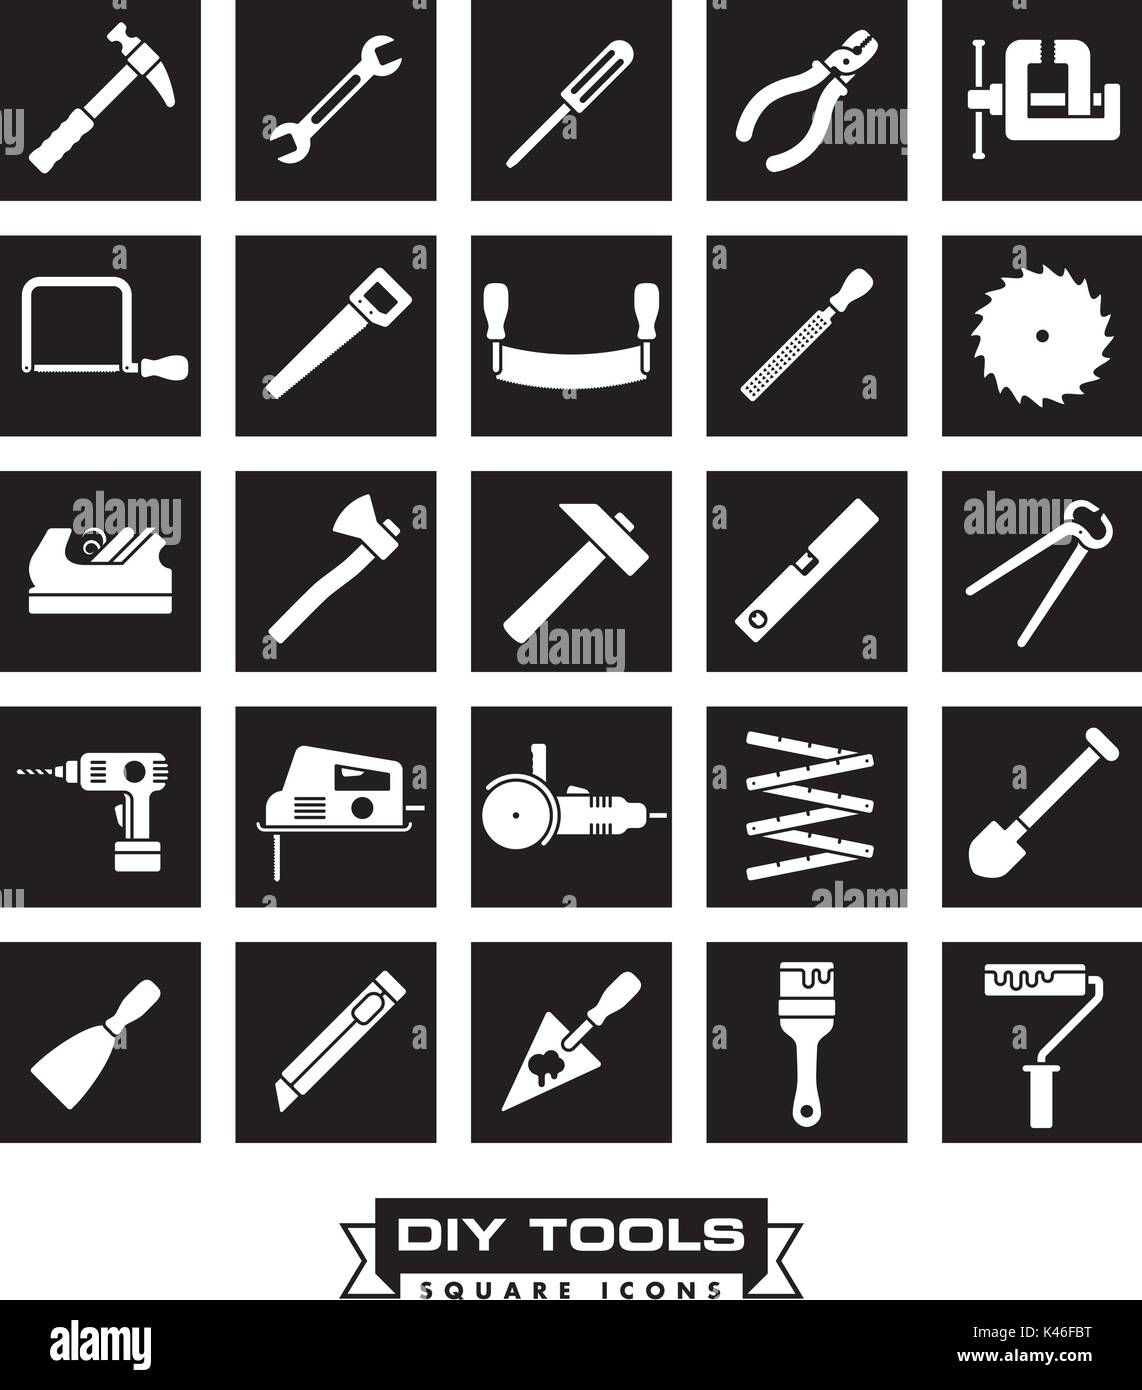 Collection of DIY and crafting tool vector icons in black squares - Stock Vector